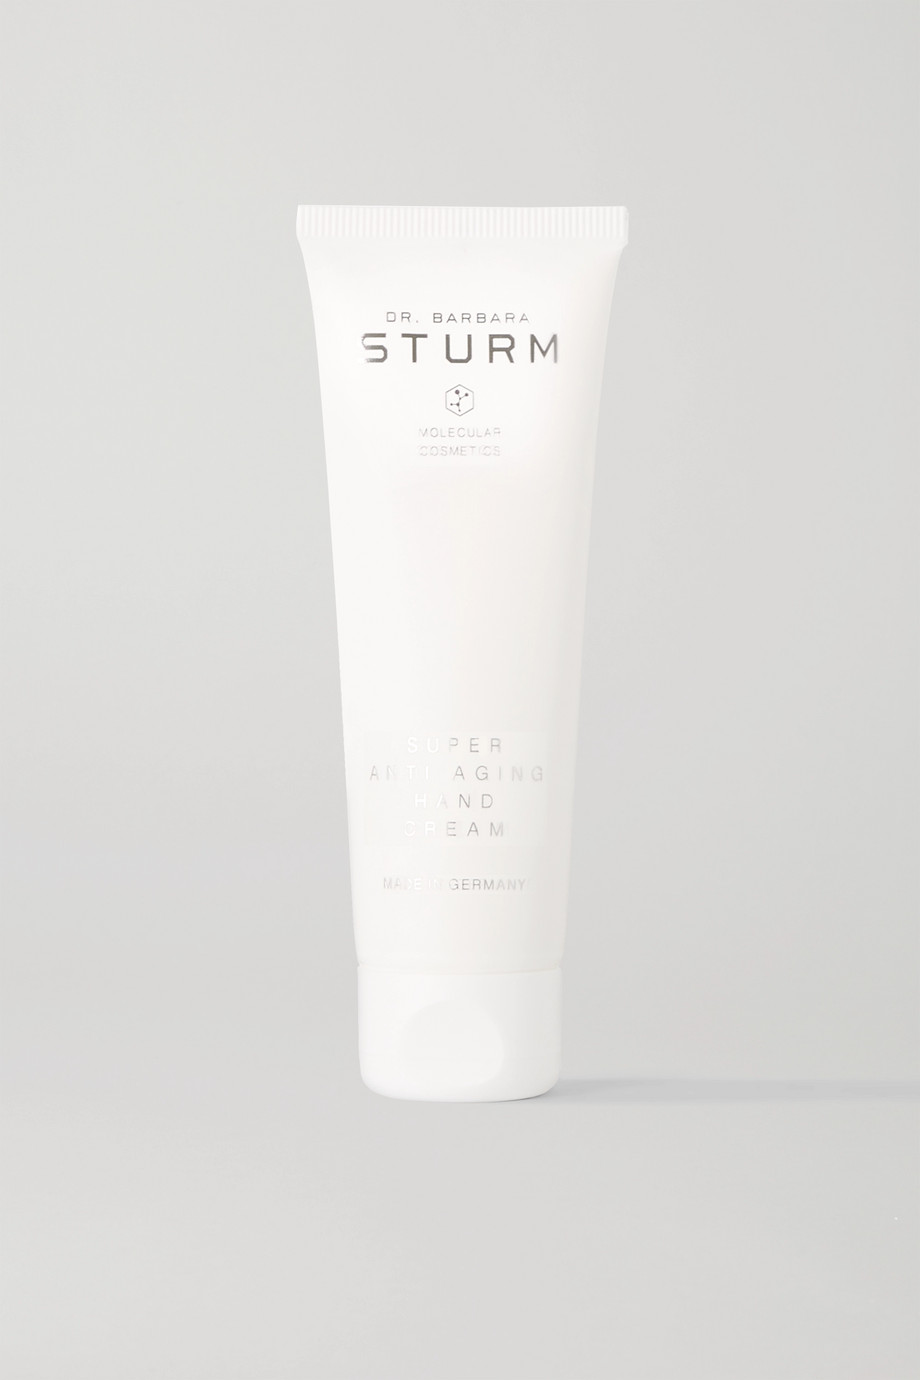 Dr. Barbara Sturm Super Anti-Aging Hand Cream, 50 ml – Handcreme